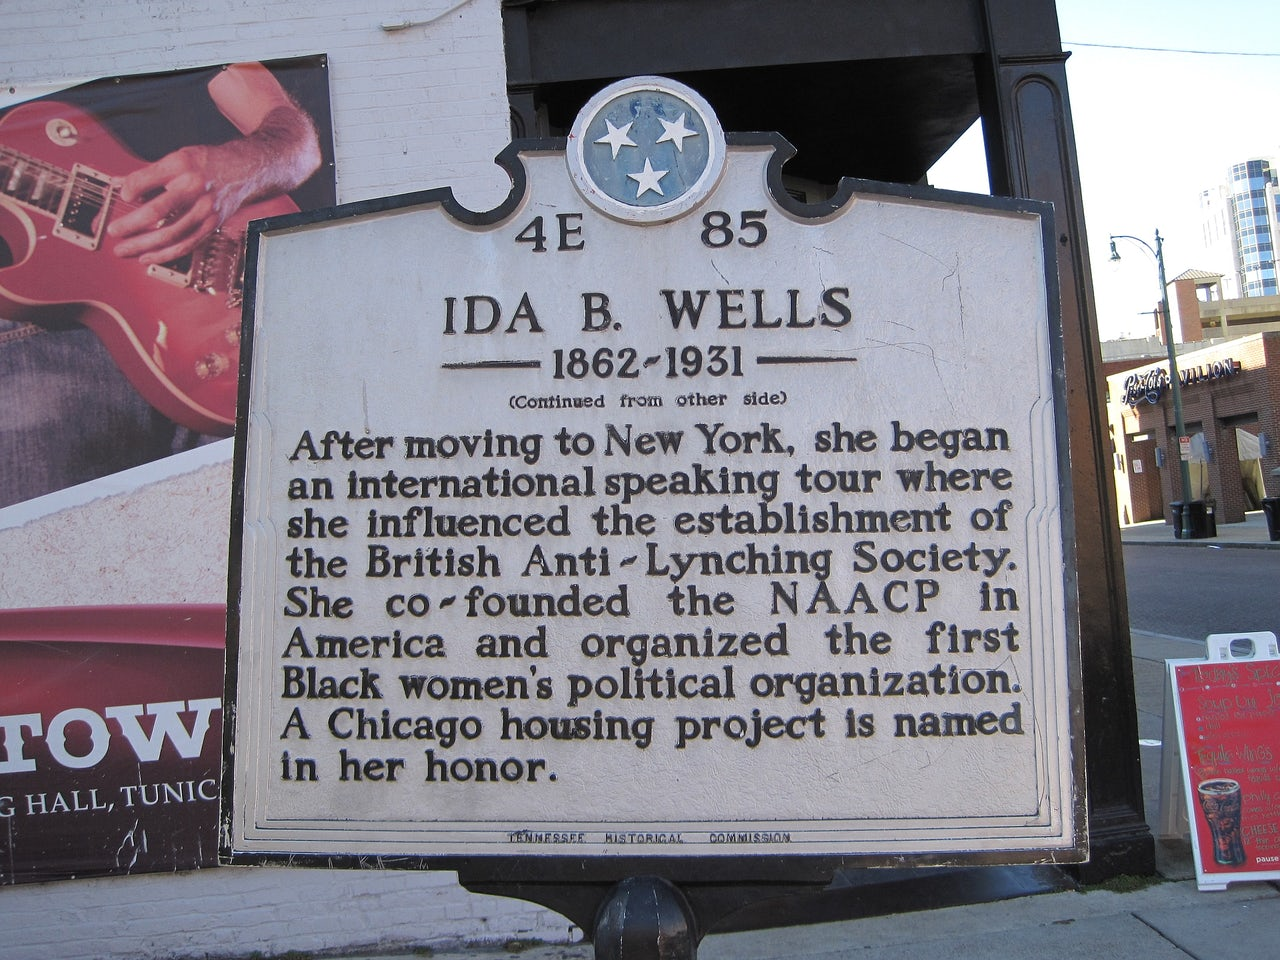 A historical marker about Wells in Memphis, TN.